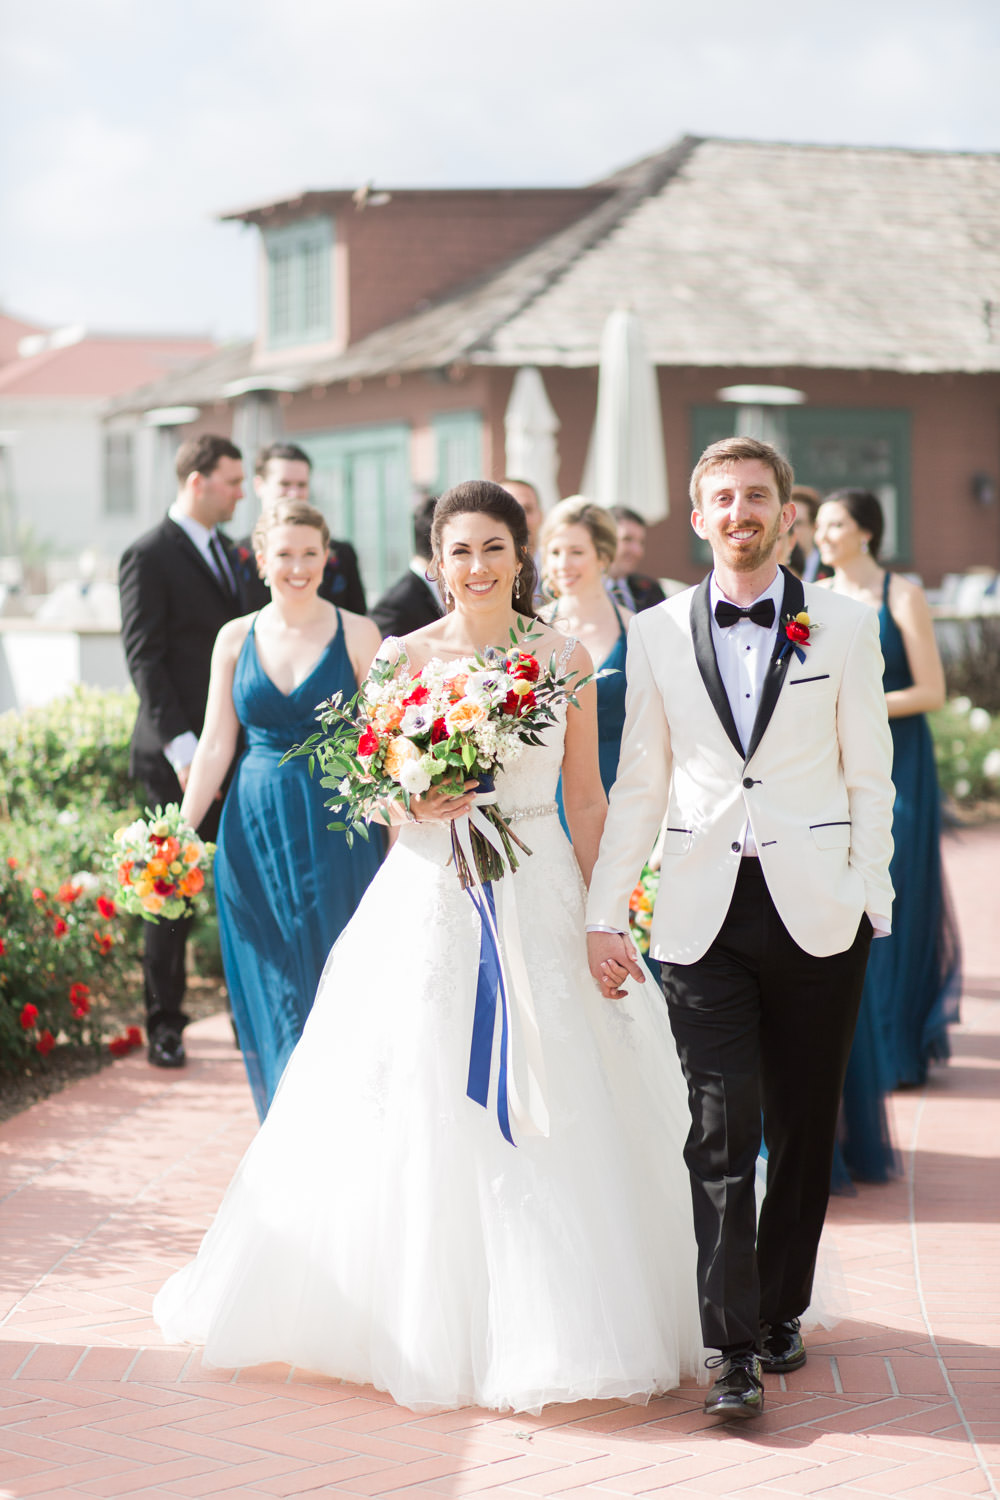 Bridal party portraits at the Hotel del CoronadoHotel del Coronado wedding first look, Cavin Elizabeth Photography